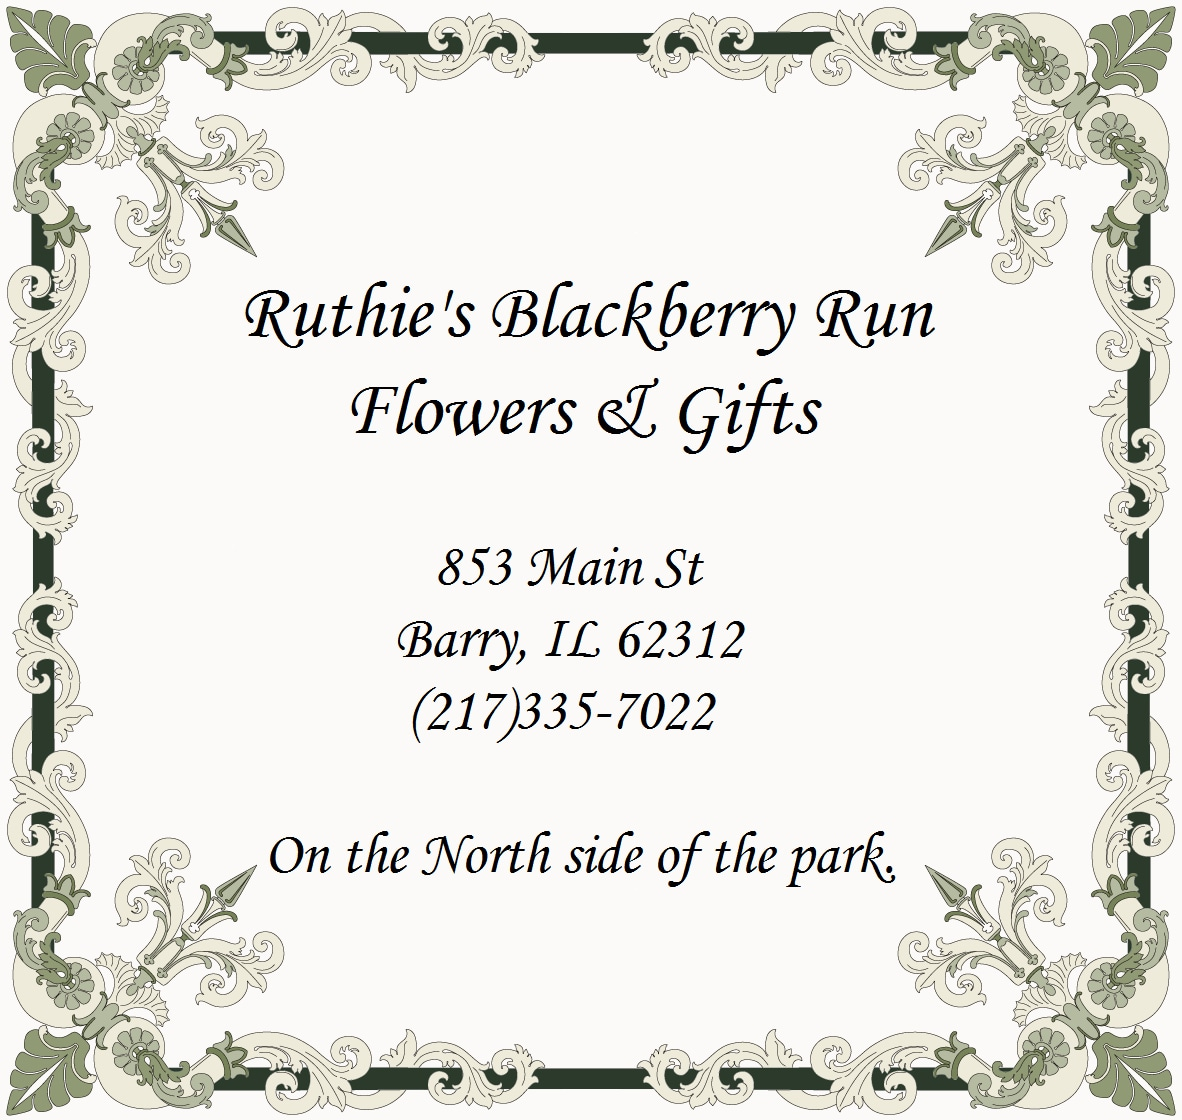 Pretty Please In Barry Il Ruthies Blackberry Run Flowers Gifts